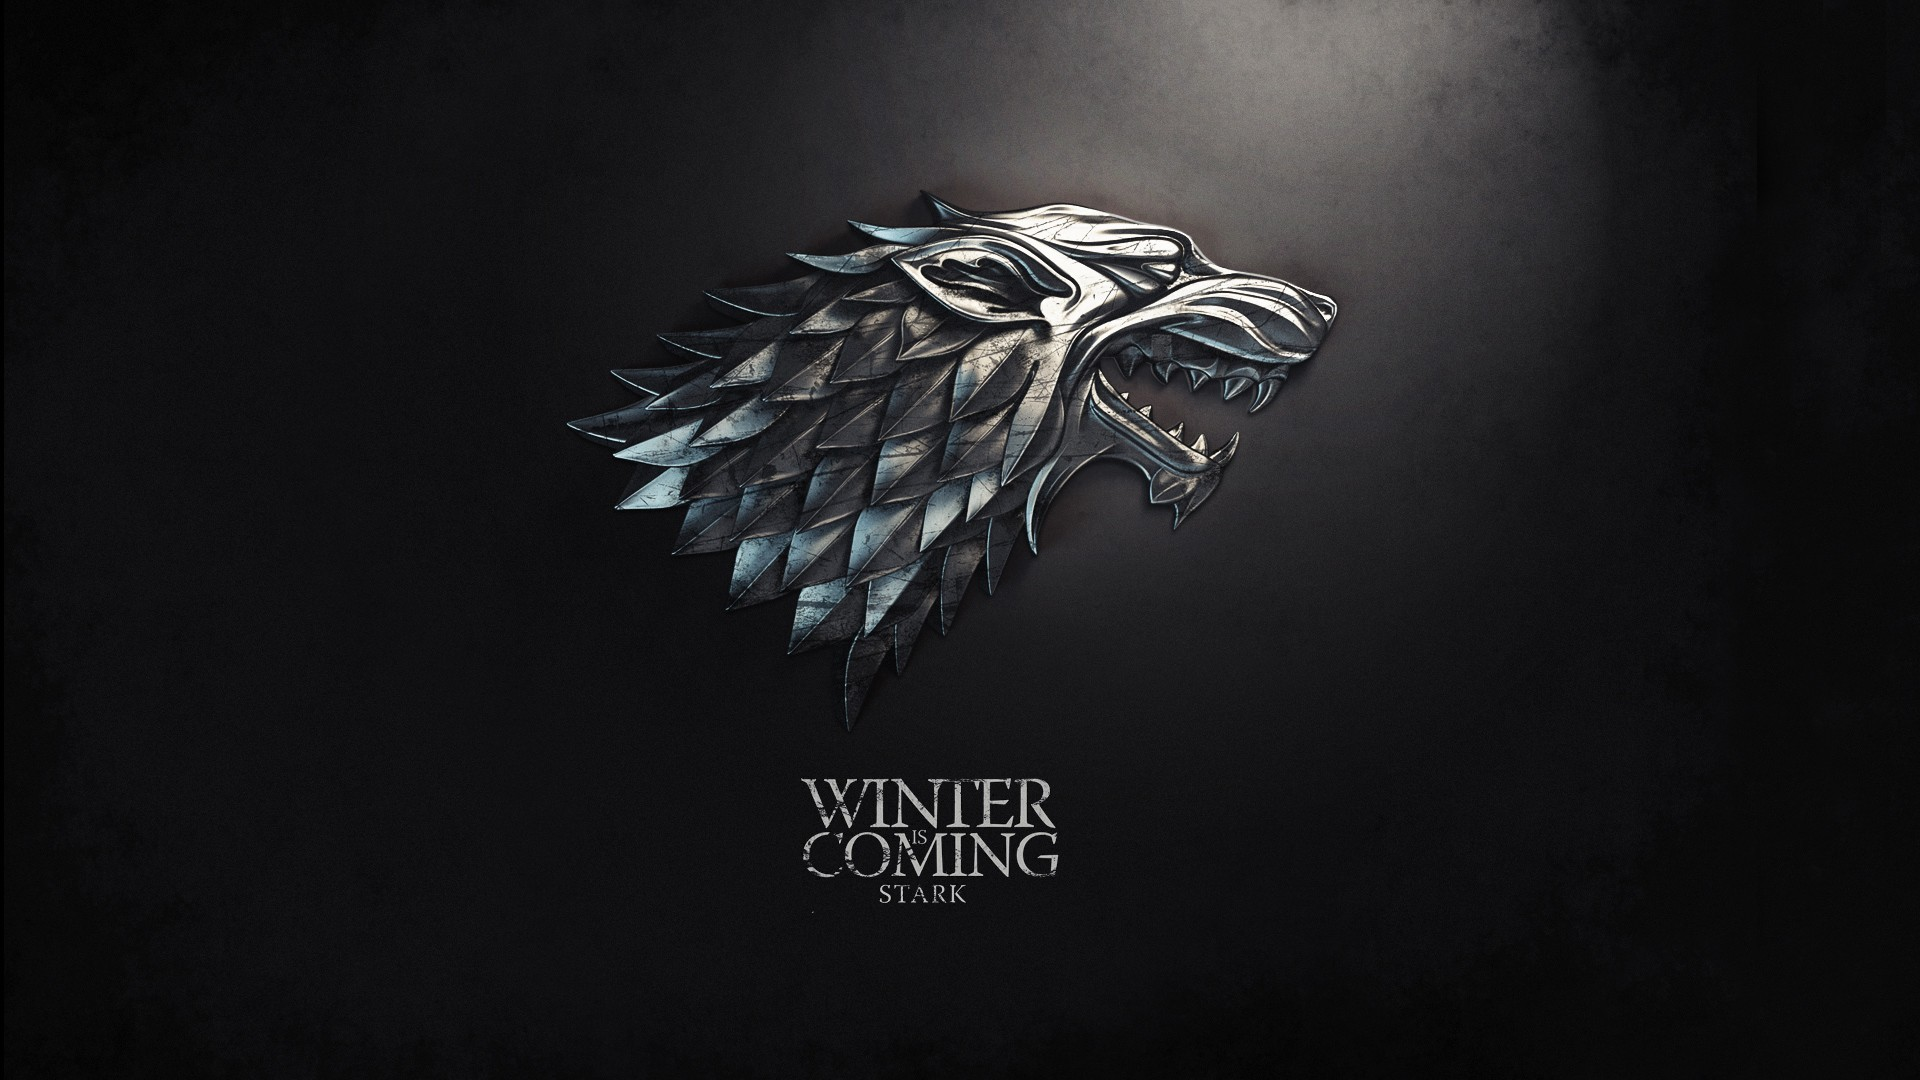 Game of Thrones wallpaper A song of Ice and Fire House of Stark wolf symbol  logo